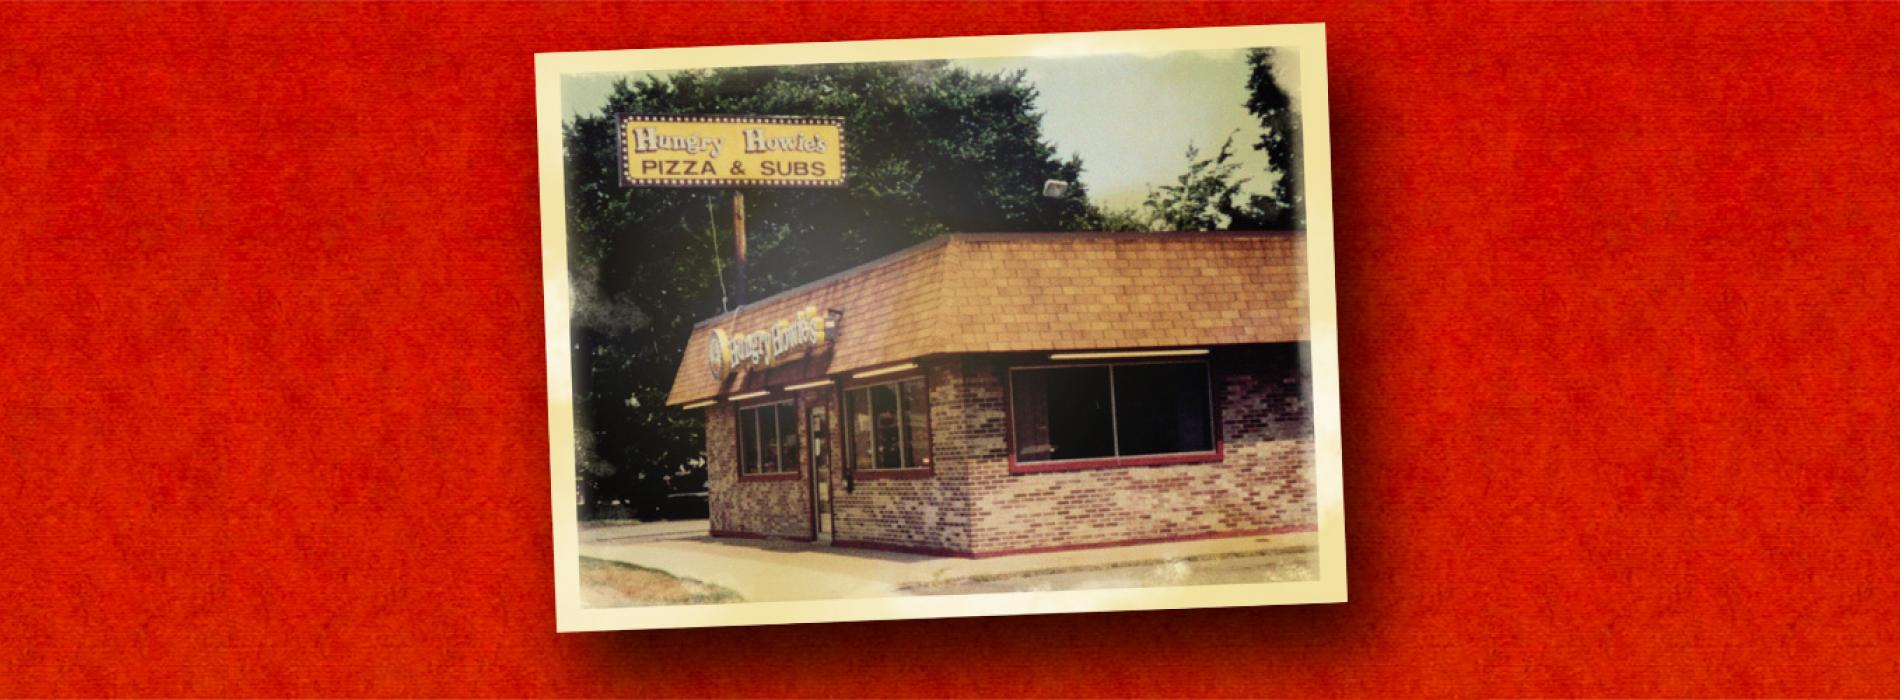 First Hungry Howie's Top Pizza Franchises